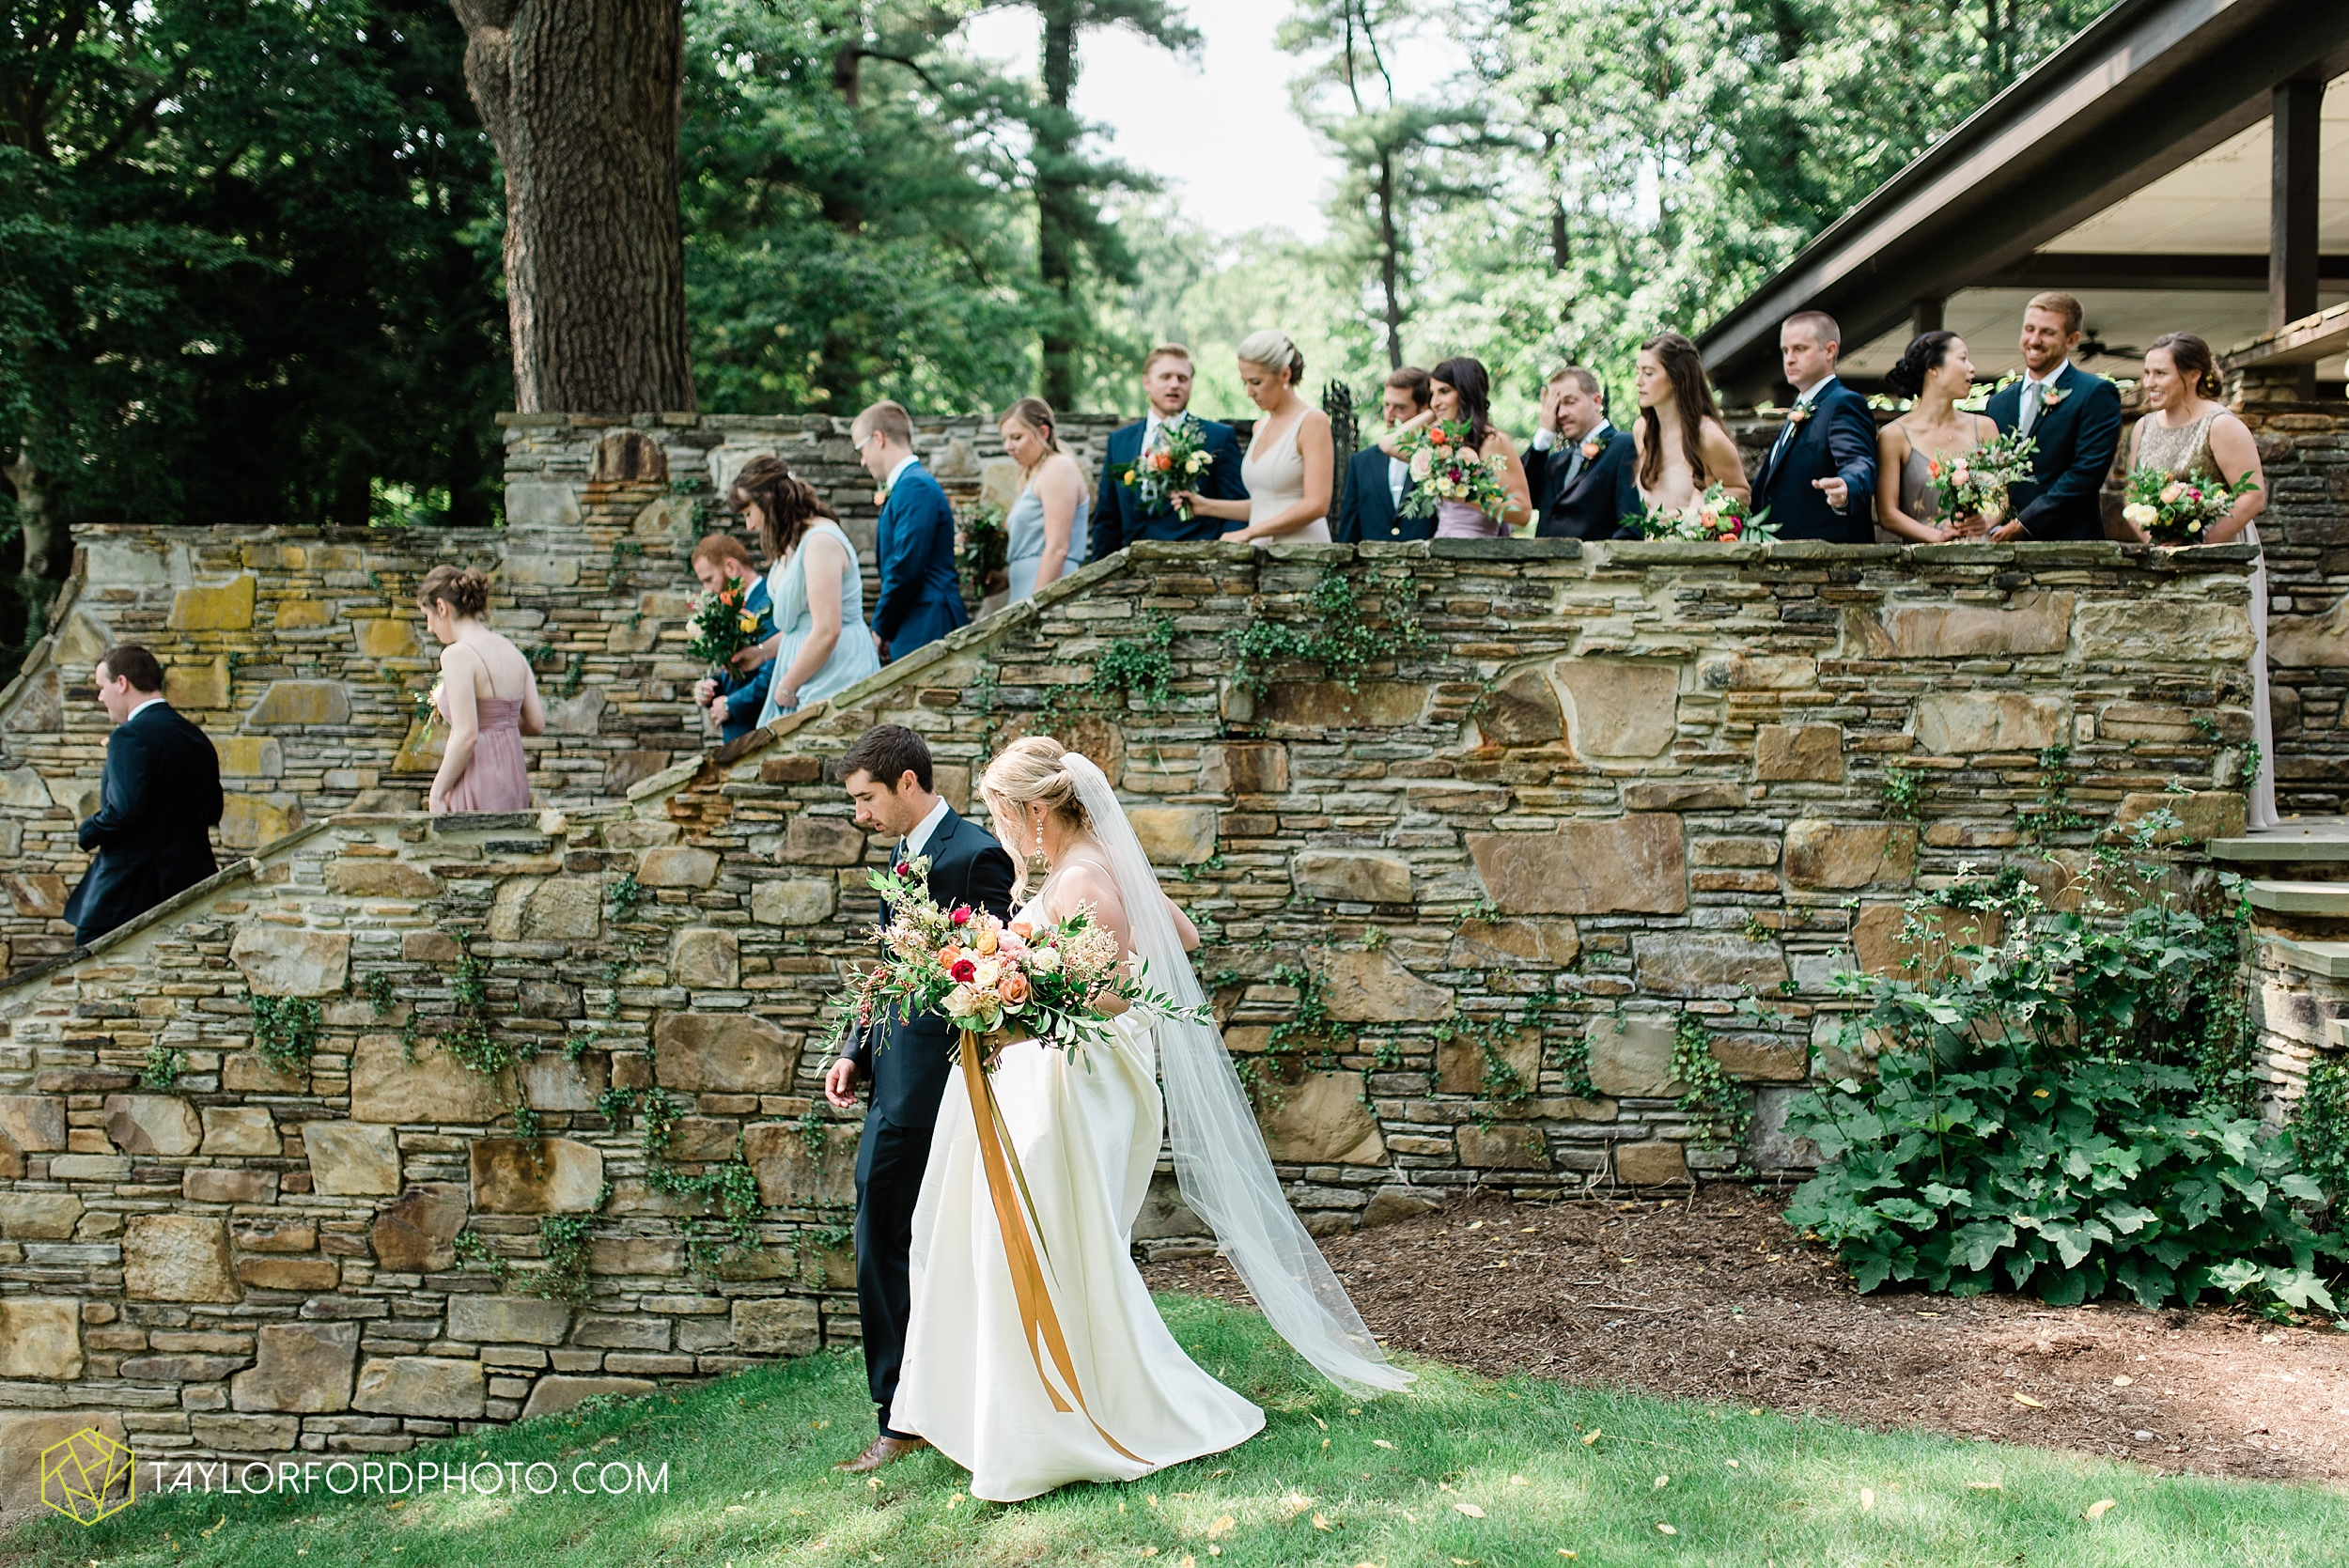 margot-may-evan-kohler-club-at-hillbrook-cleveland-chagrin-falls-outdoor-wedding-bhldn-gardenview-flowers-toledo-photographer-taylor-ford-photographer_9505.jpg